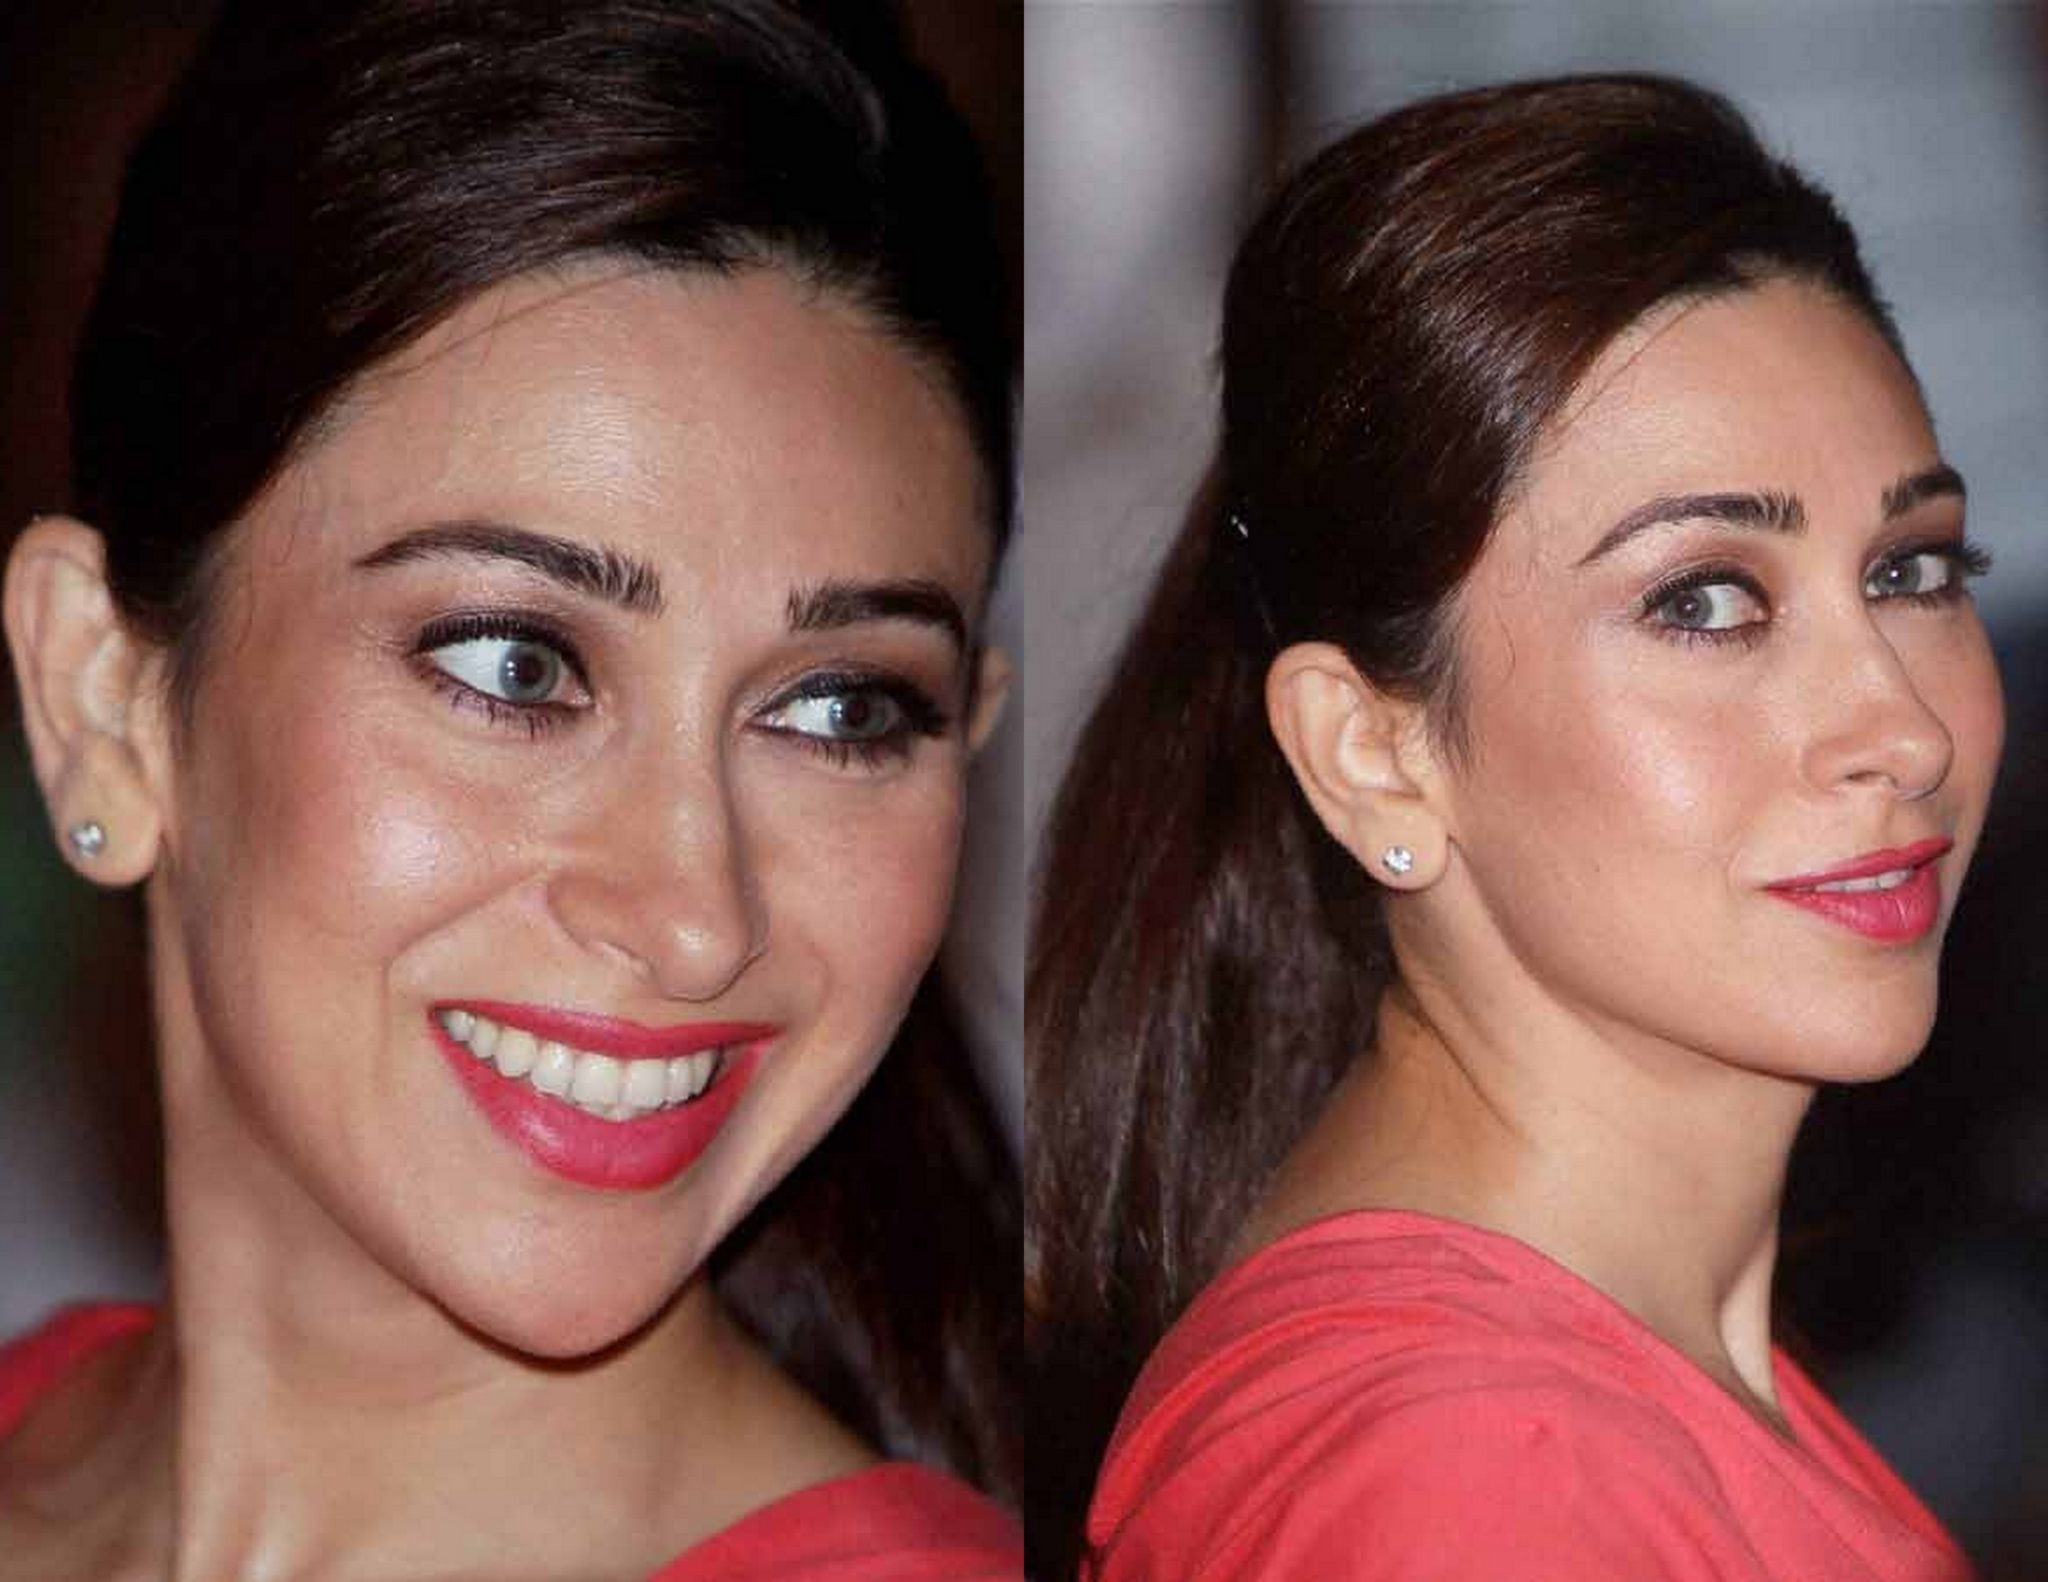 Discussion on this topic: Joan Vohs, karishma-kapoor/